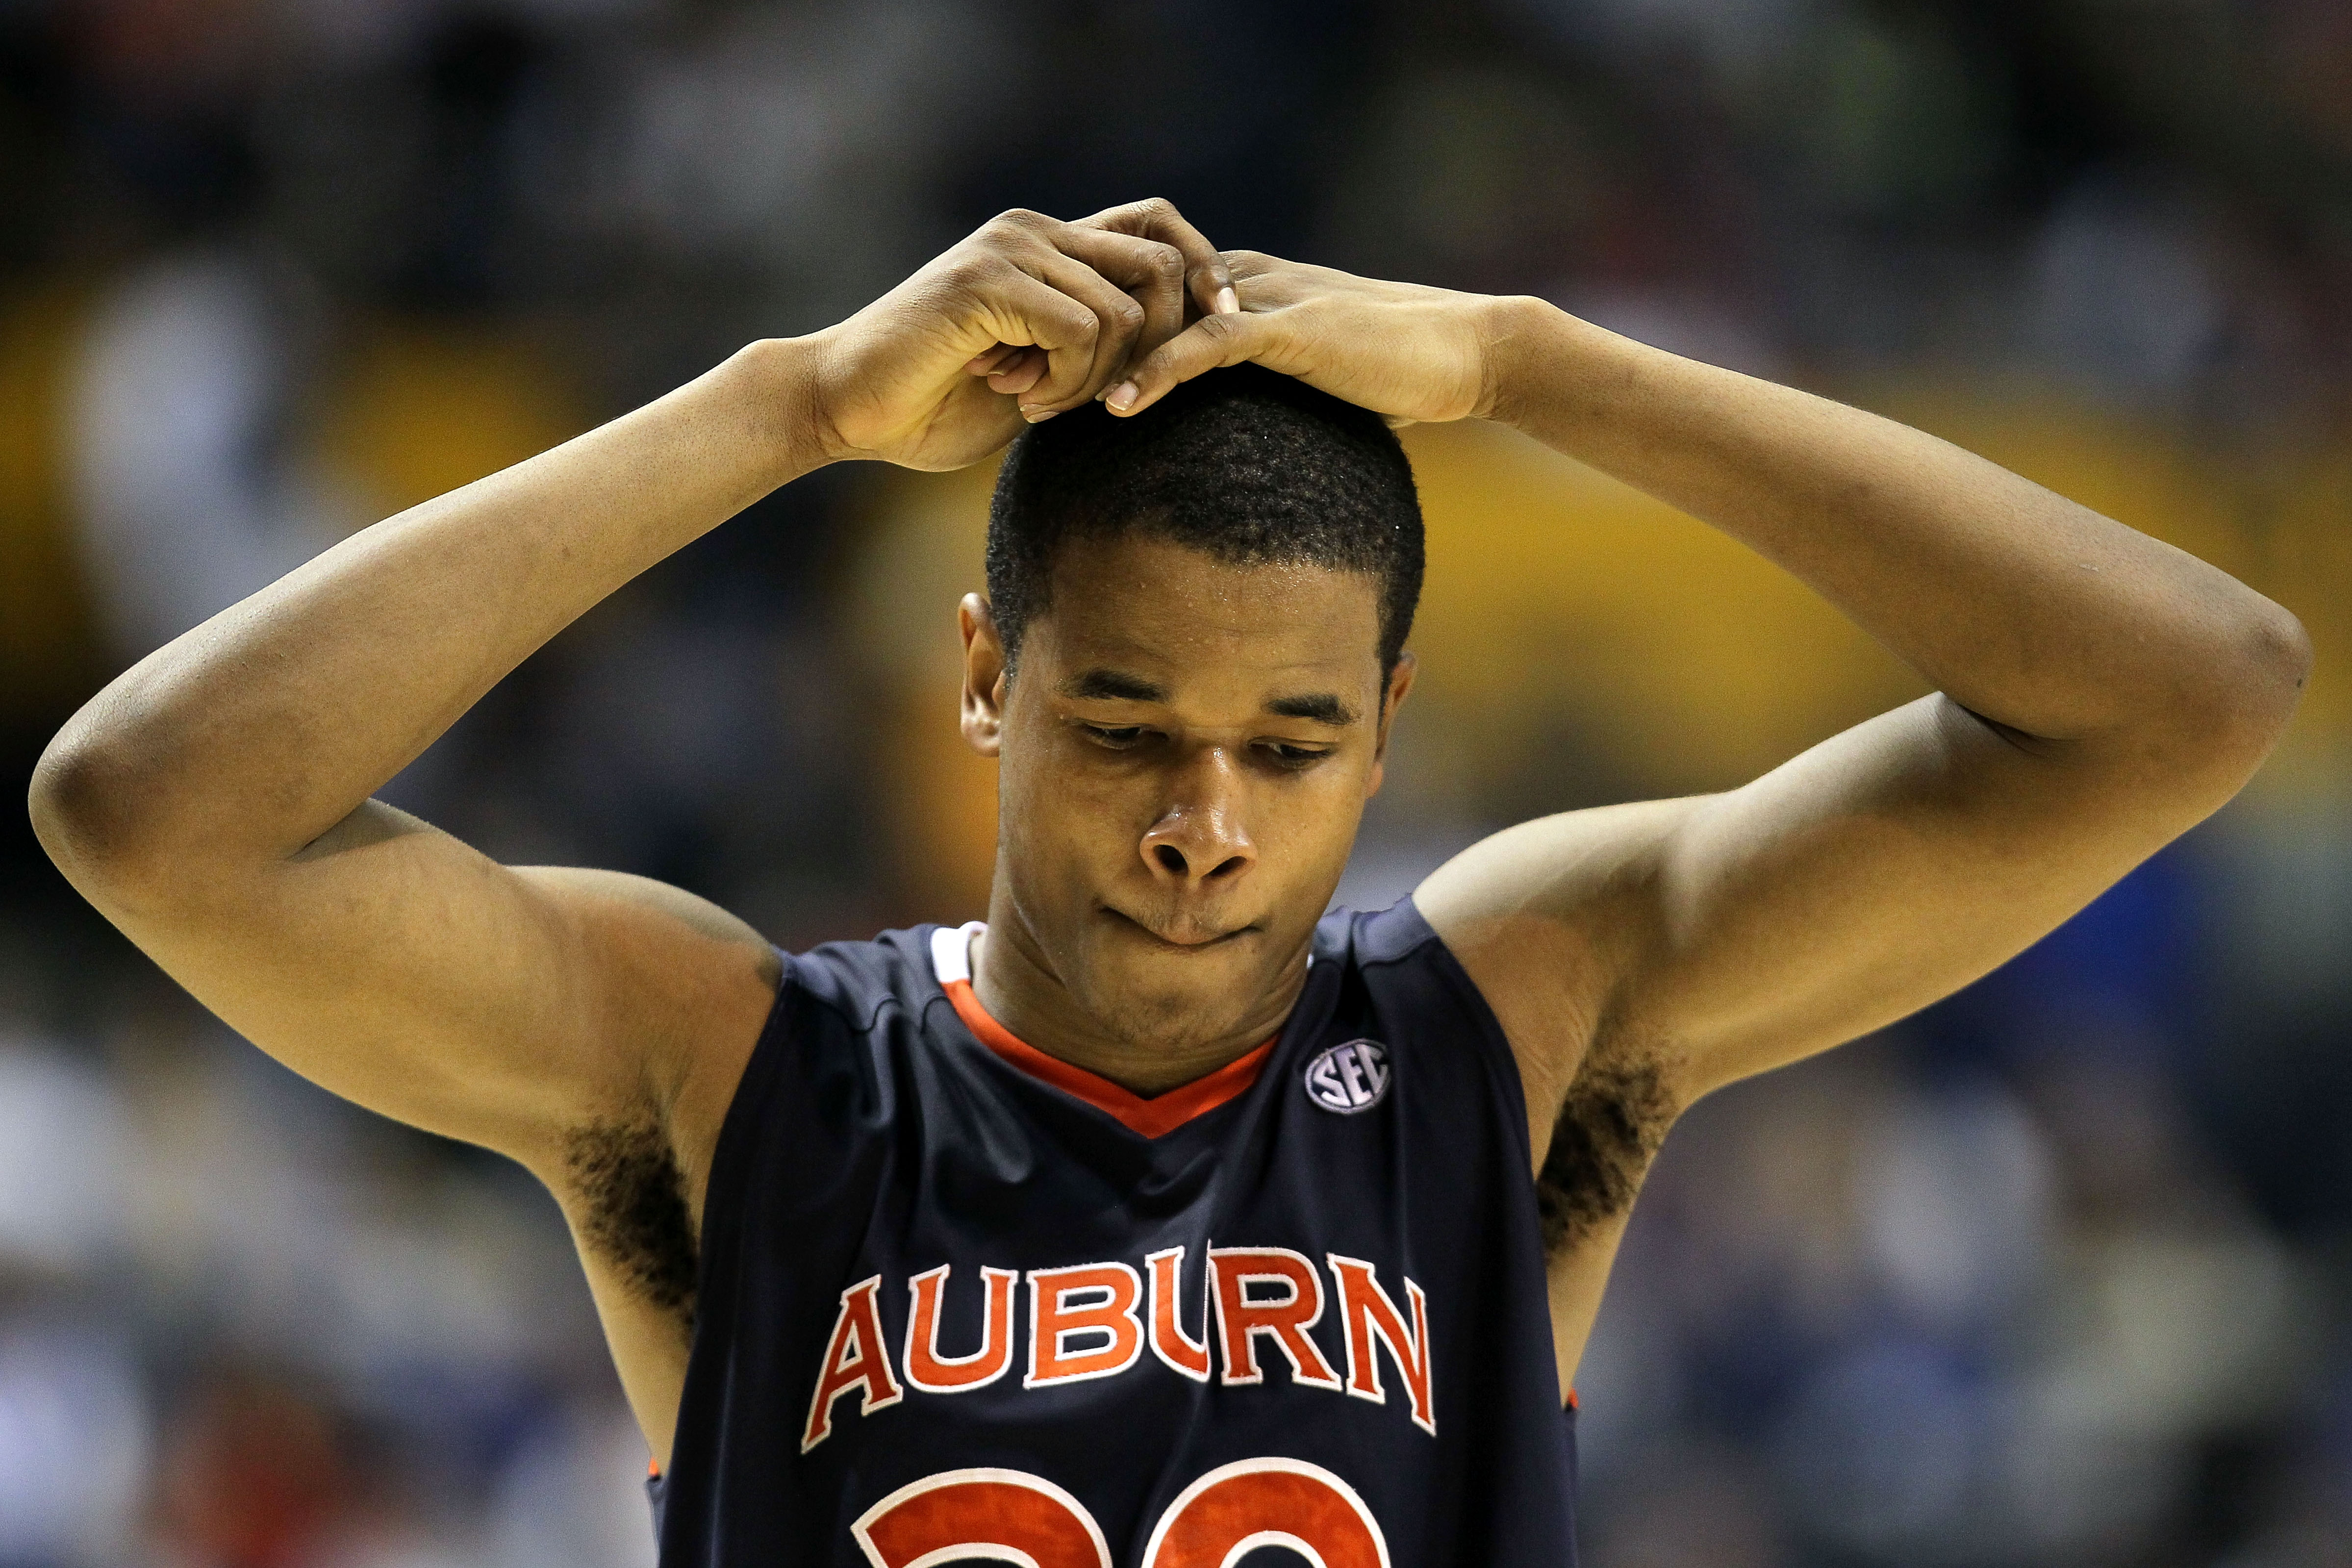 NASHVILLE, TN - MARCH 11:  Brendon Knox #30 of the Auburn Tigers looks on dejected after they lost 78-69 the Florida Gators during the first round of the SEC Men's Basketball Tournament at the Bridgestone Arena on March 11, 2010 in Nashville, Tennessee.